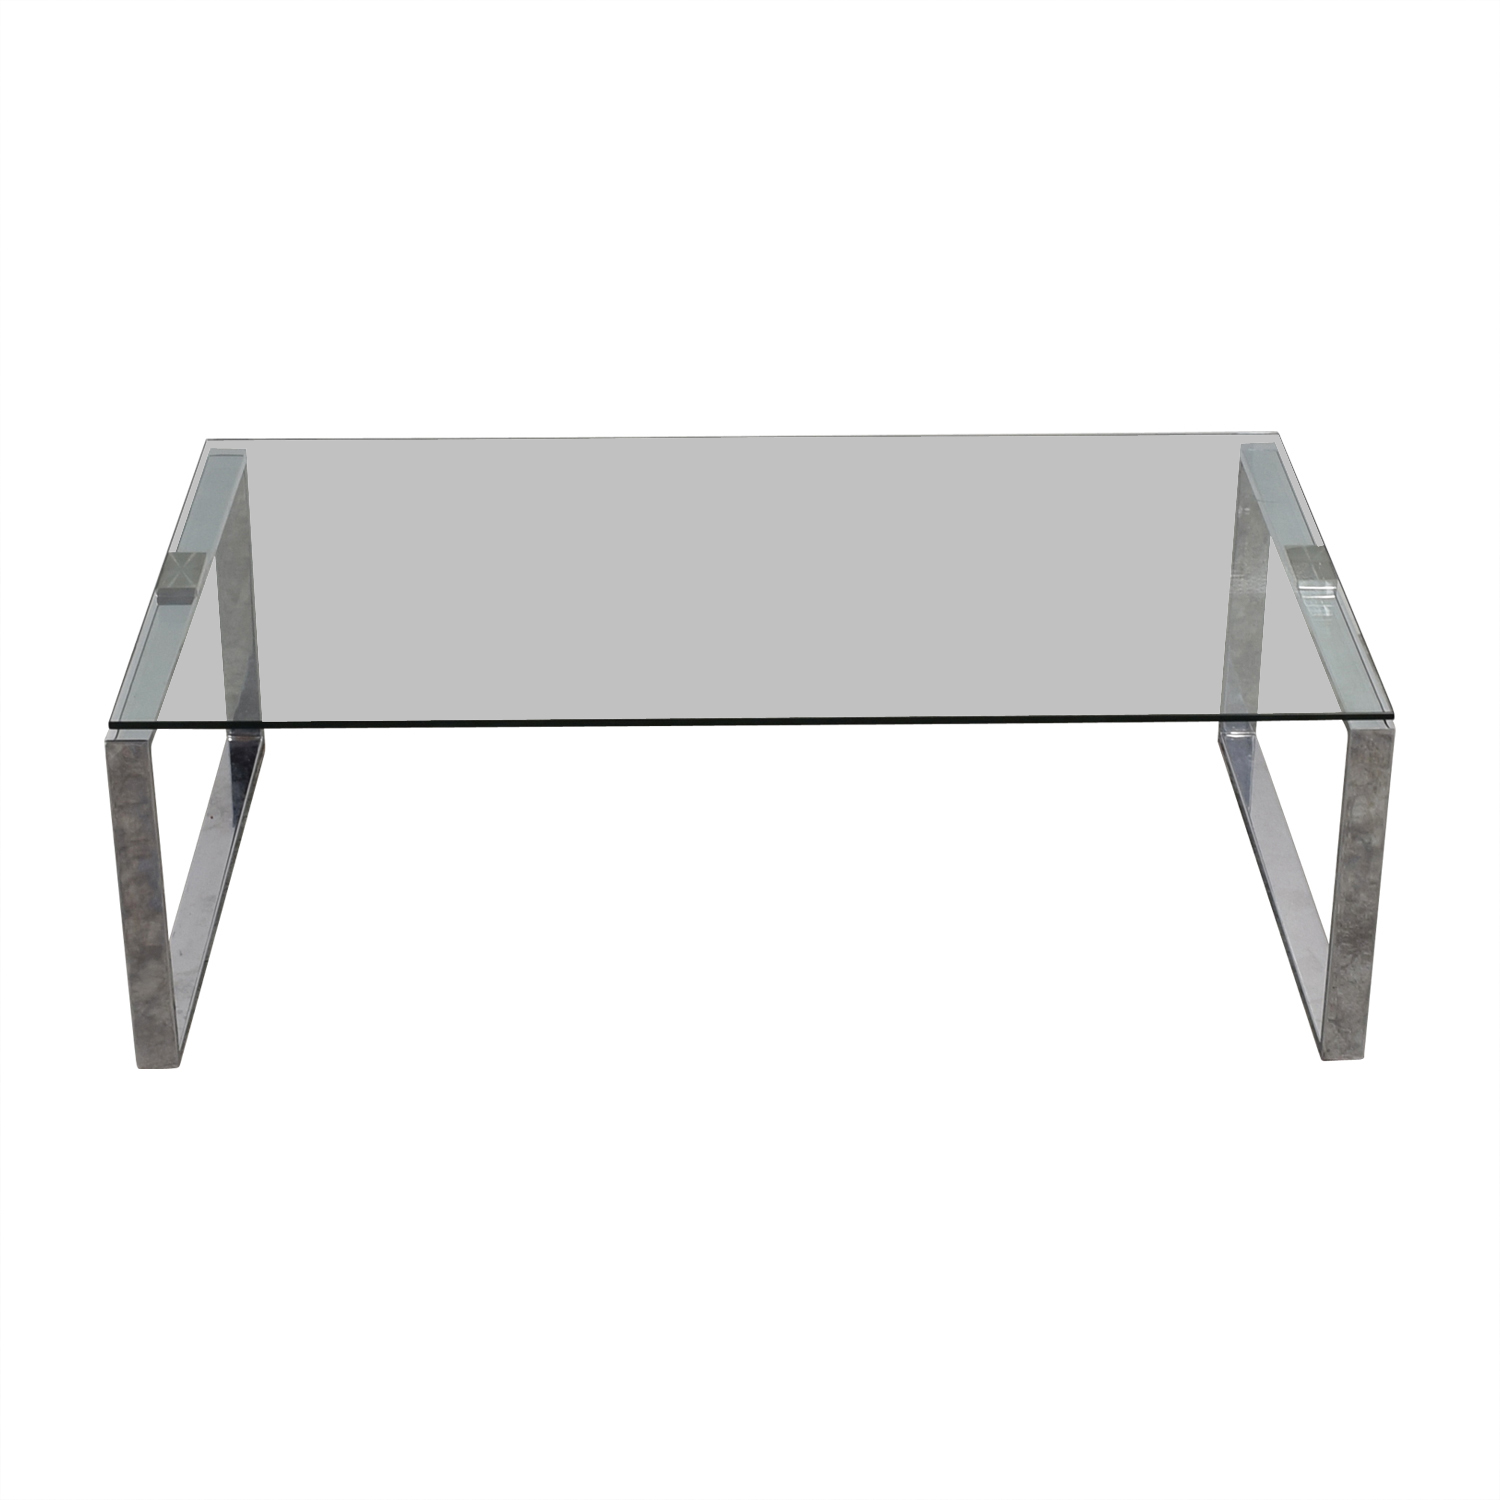 Chrome and Glass Coffee Table / Coffee Tables